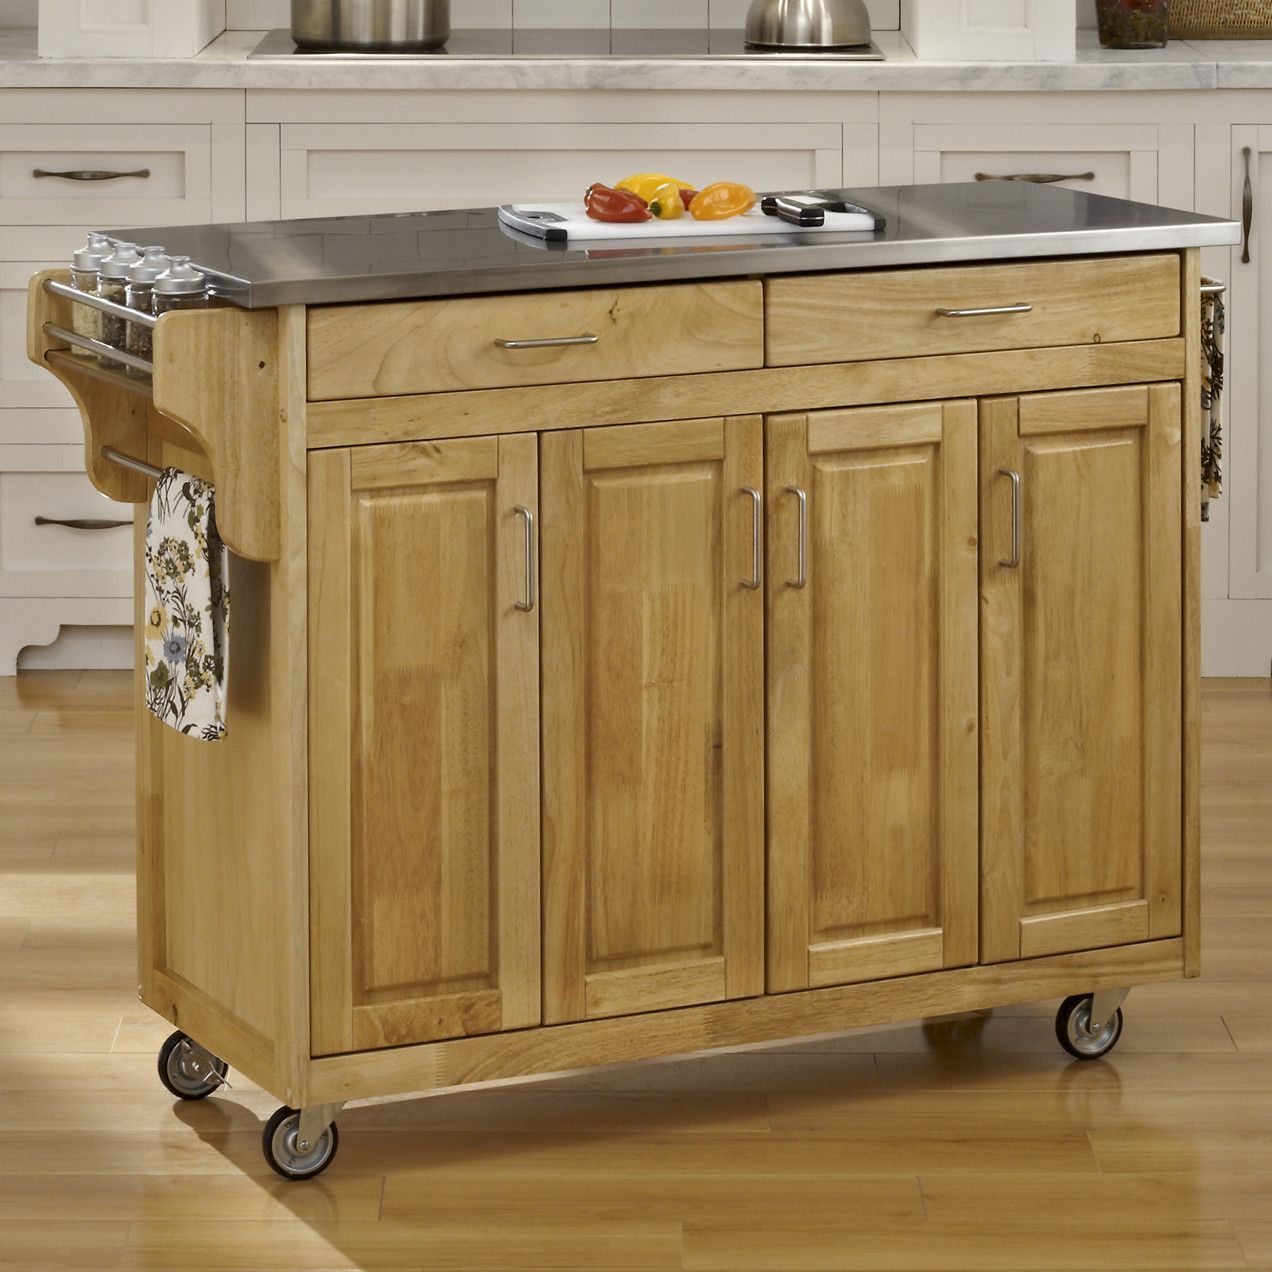 83012a8d8689f0b36369b9d5af3765f1 - Better Homes And Gardens Granite Top Kitchen Island Cart